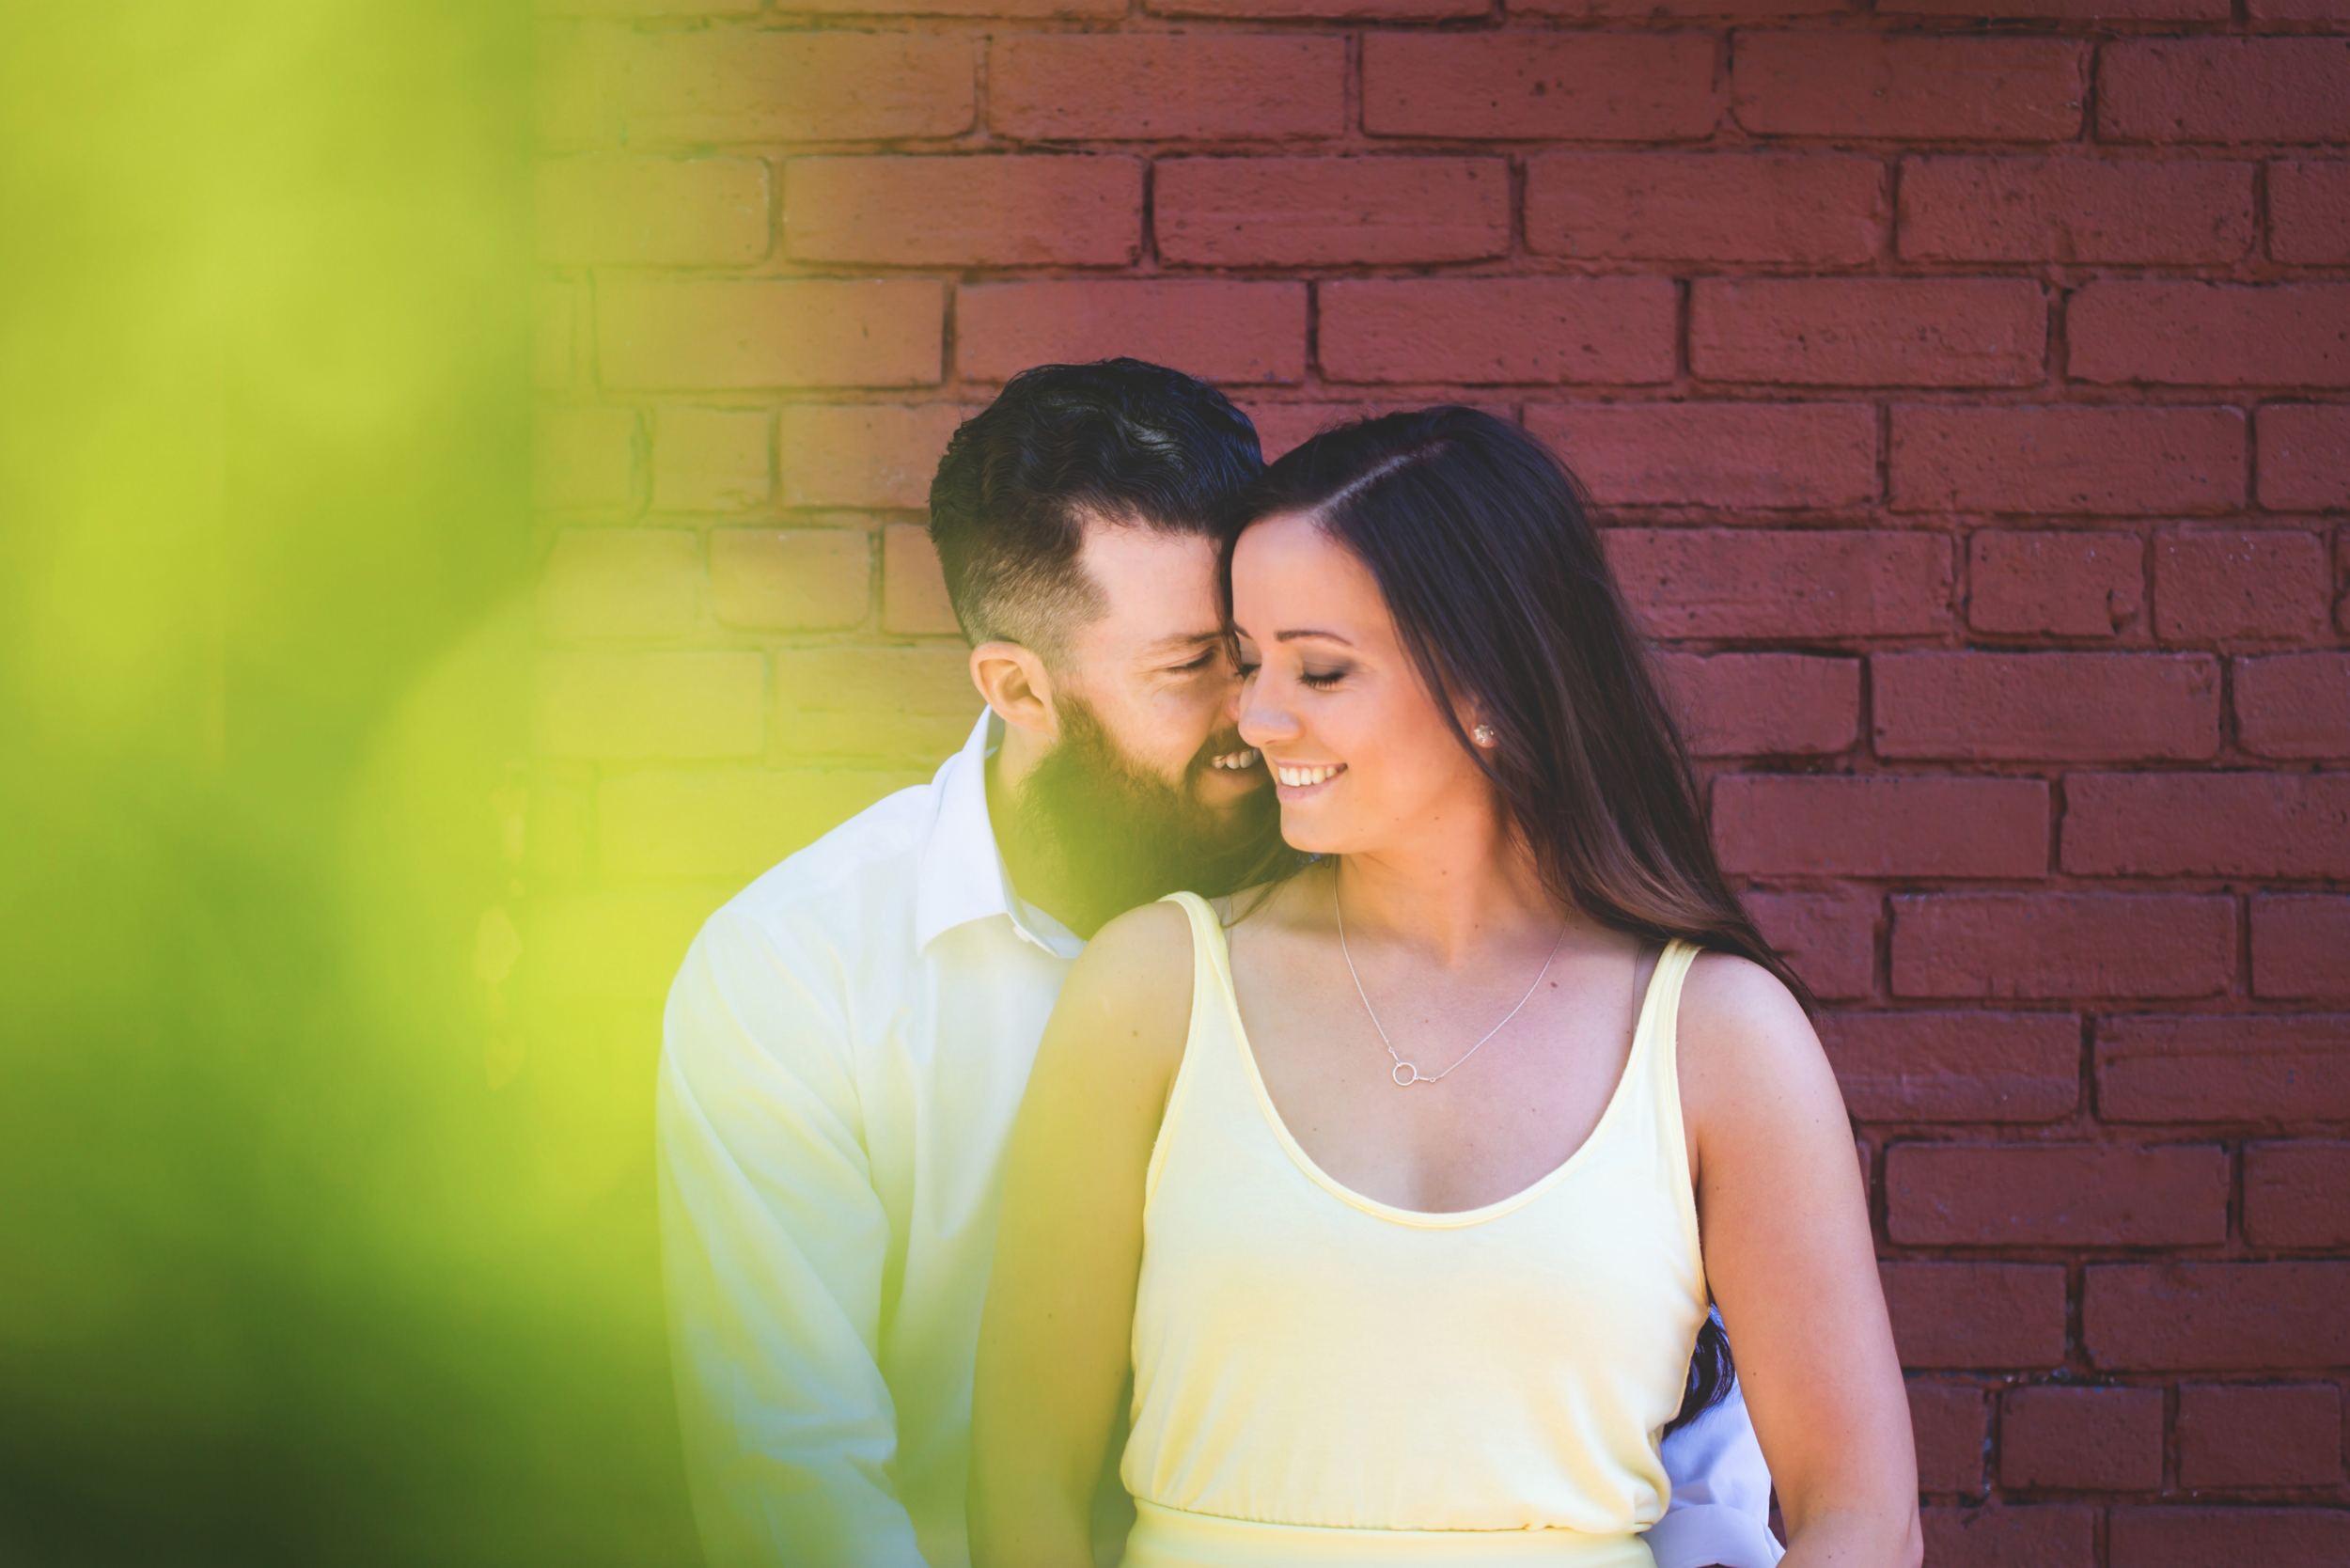 Engagement-Photos-Hamilton-Photographer-James-Street-HamOnt-GTA-Toronto-Niagara-Urban-Engaged-Moments-by-Lauren-Photo-11.png